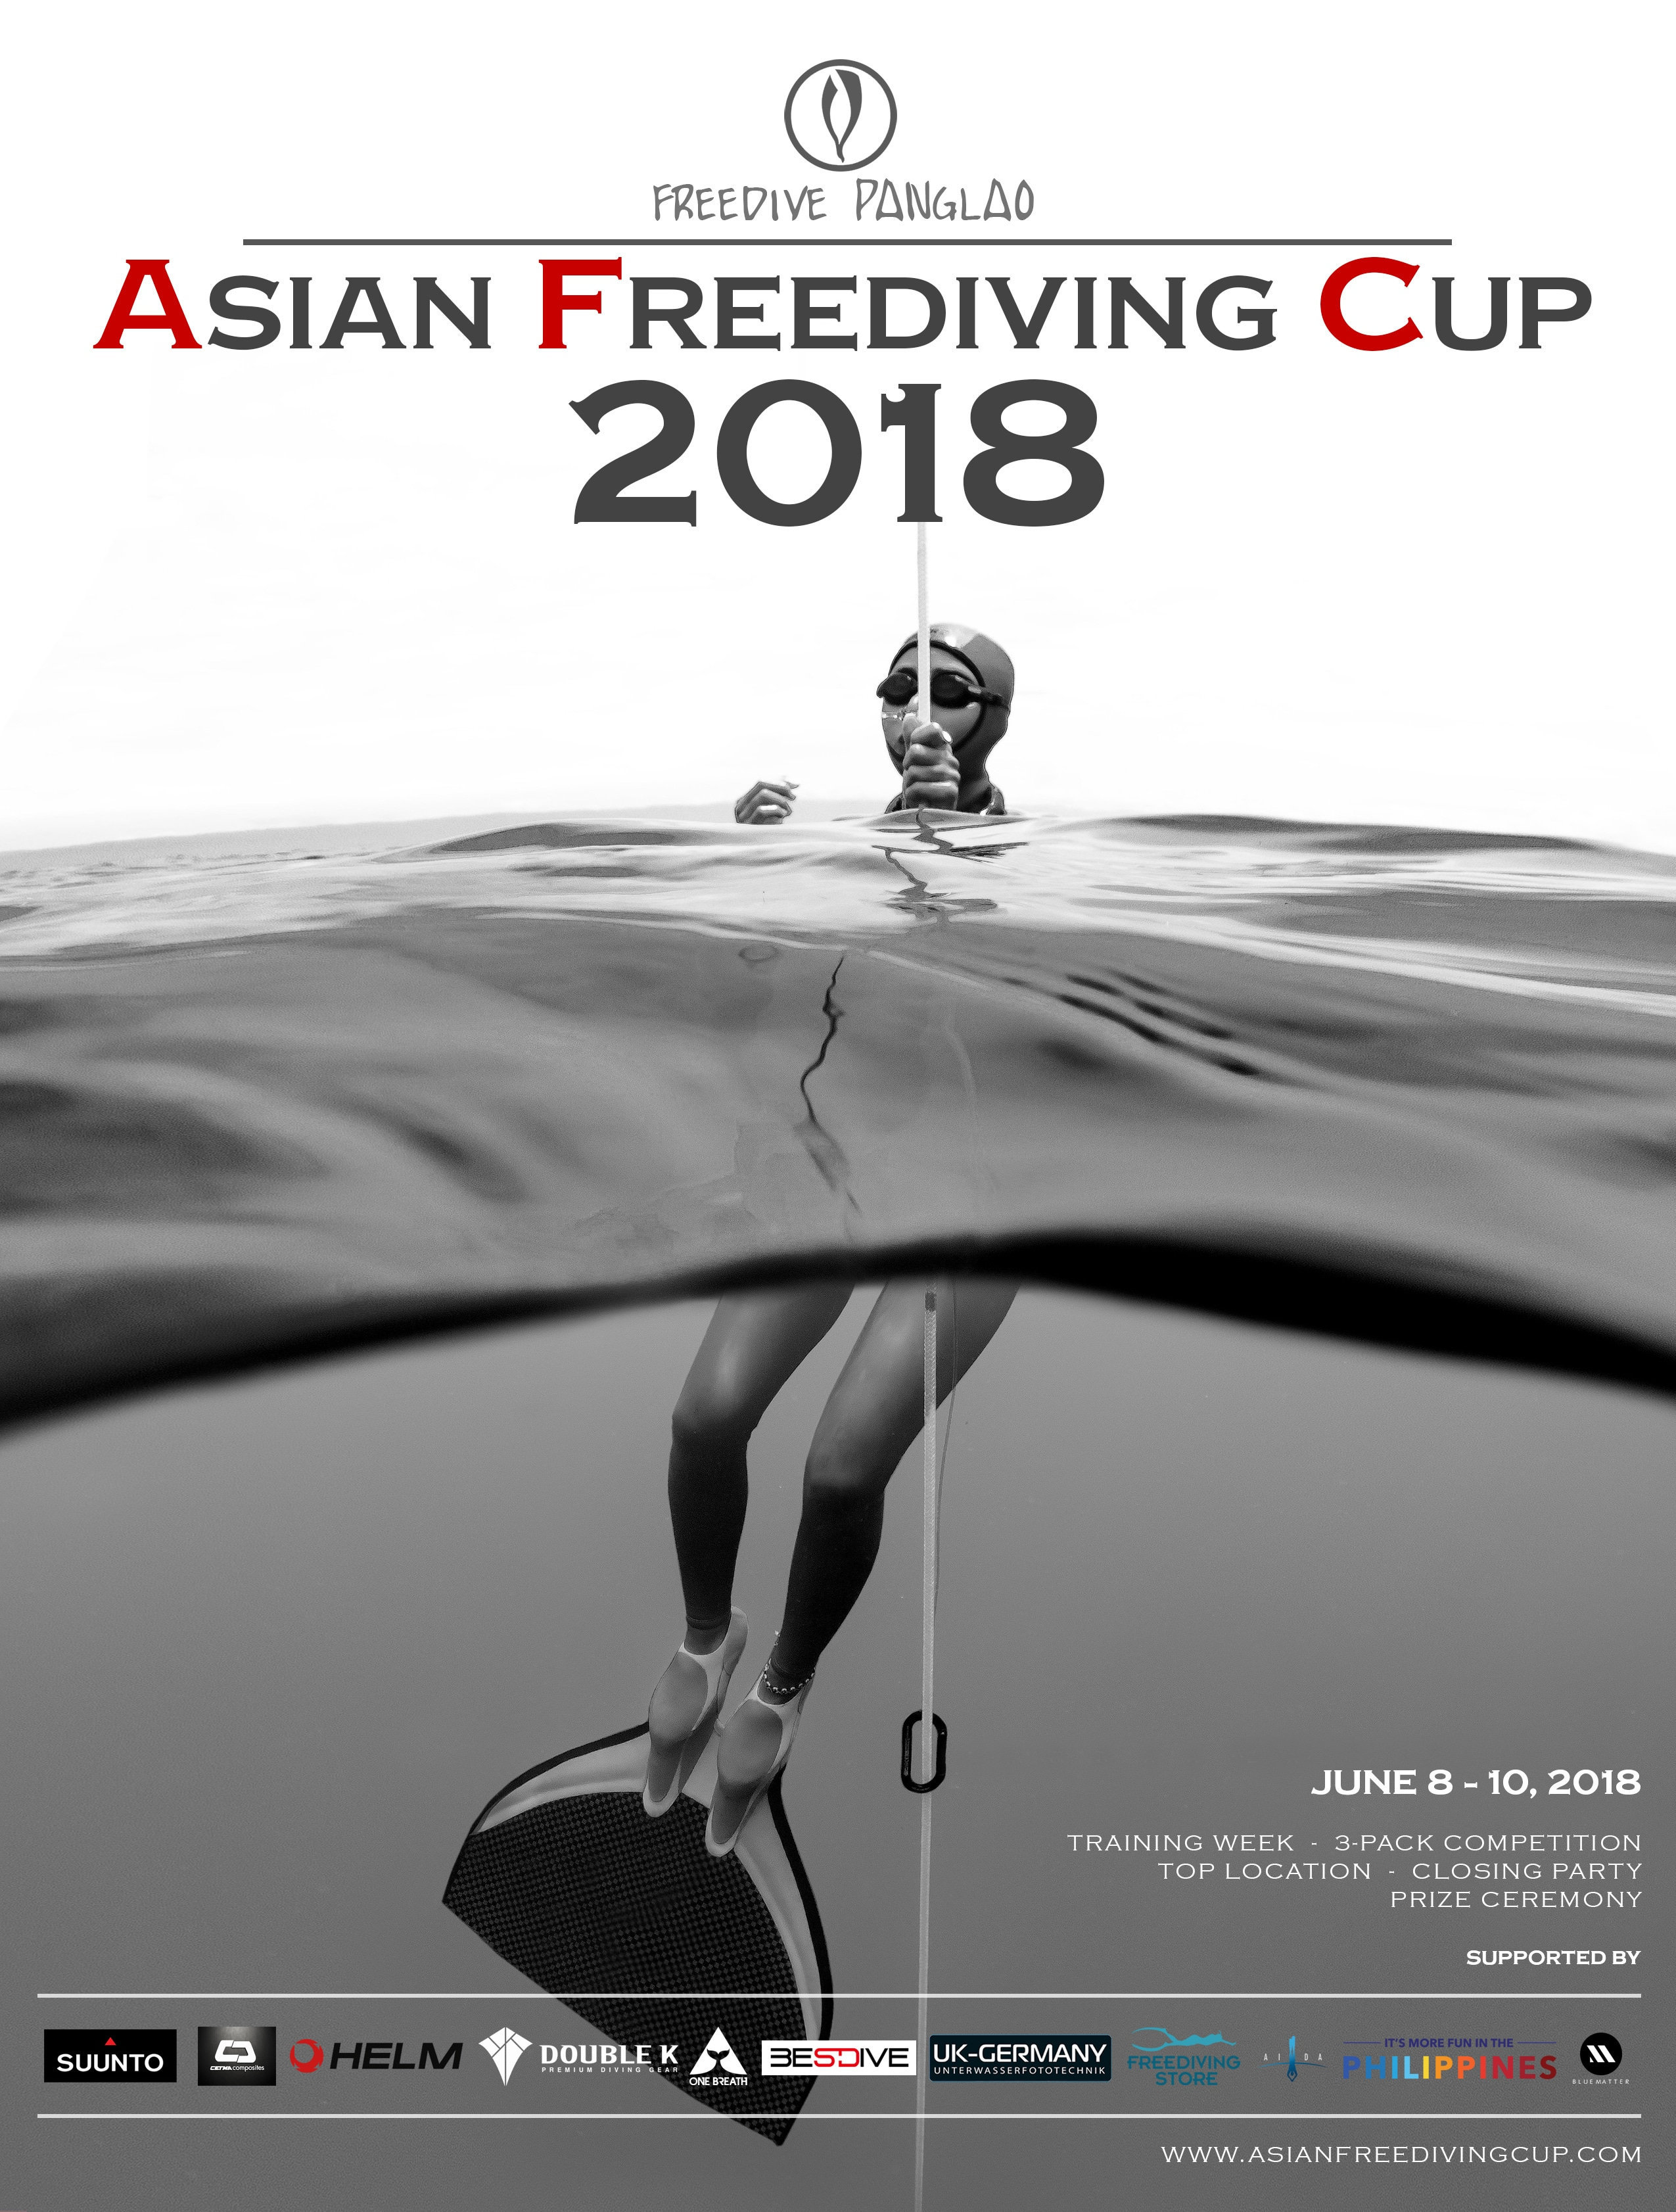 Asian Freediving Cup Organizers Announce First List Of Confirmed Athletes